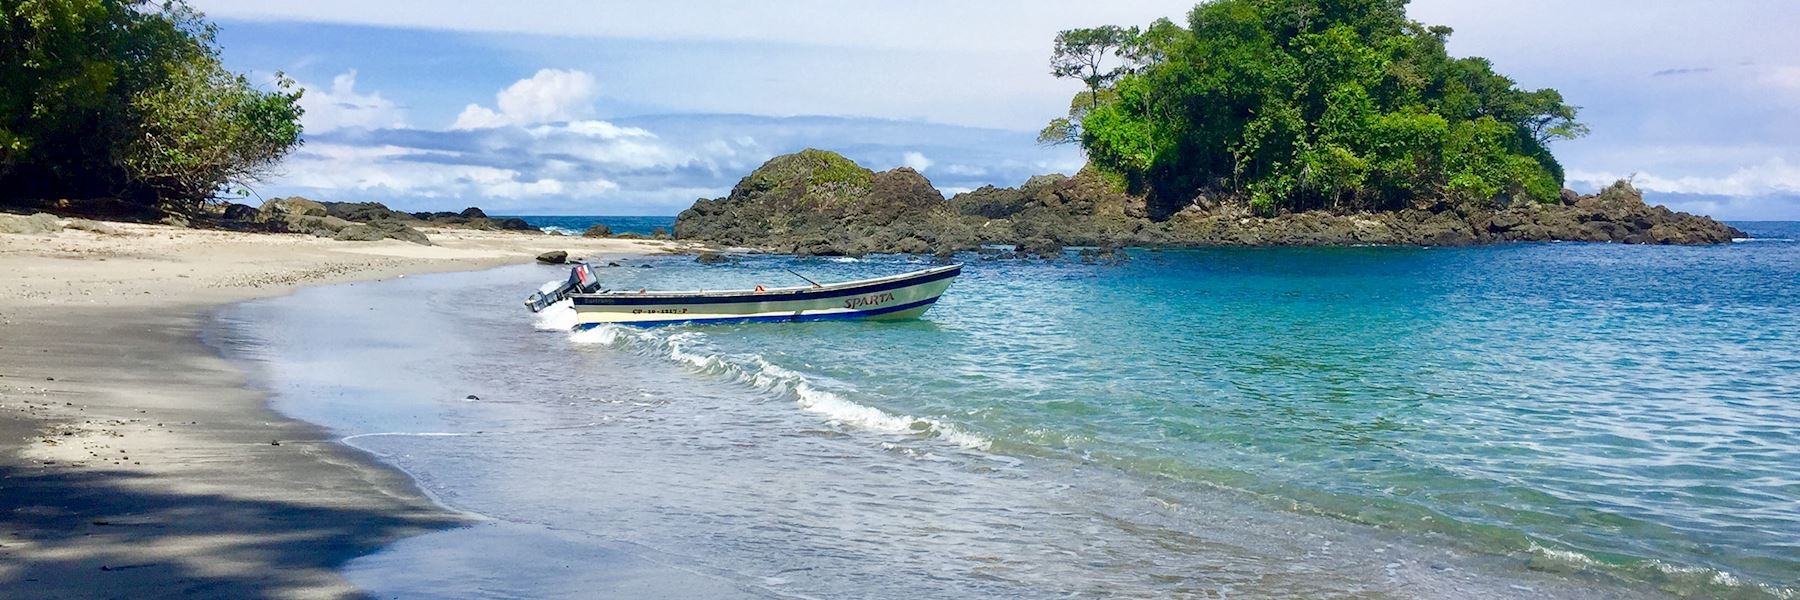 Visit the Pacific Coast, Colombia